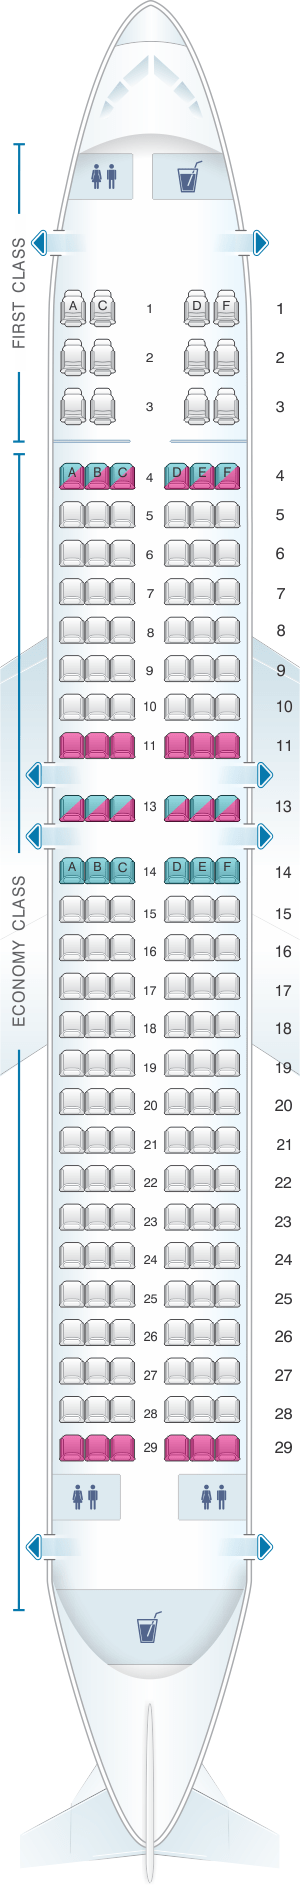 Seat Map For Sun Country Airlines Boeing B737 800 162pax